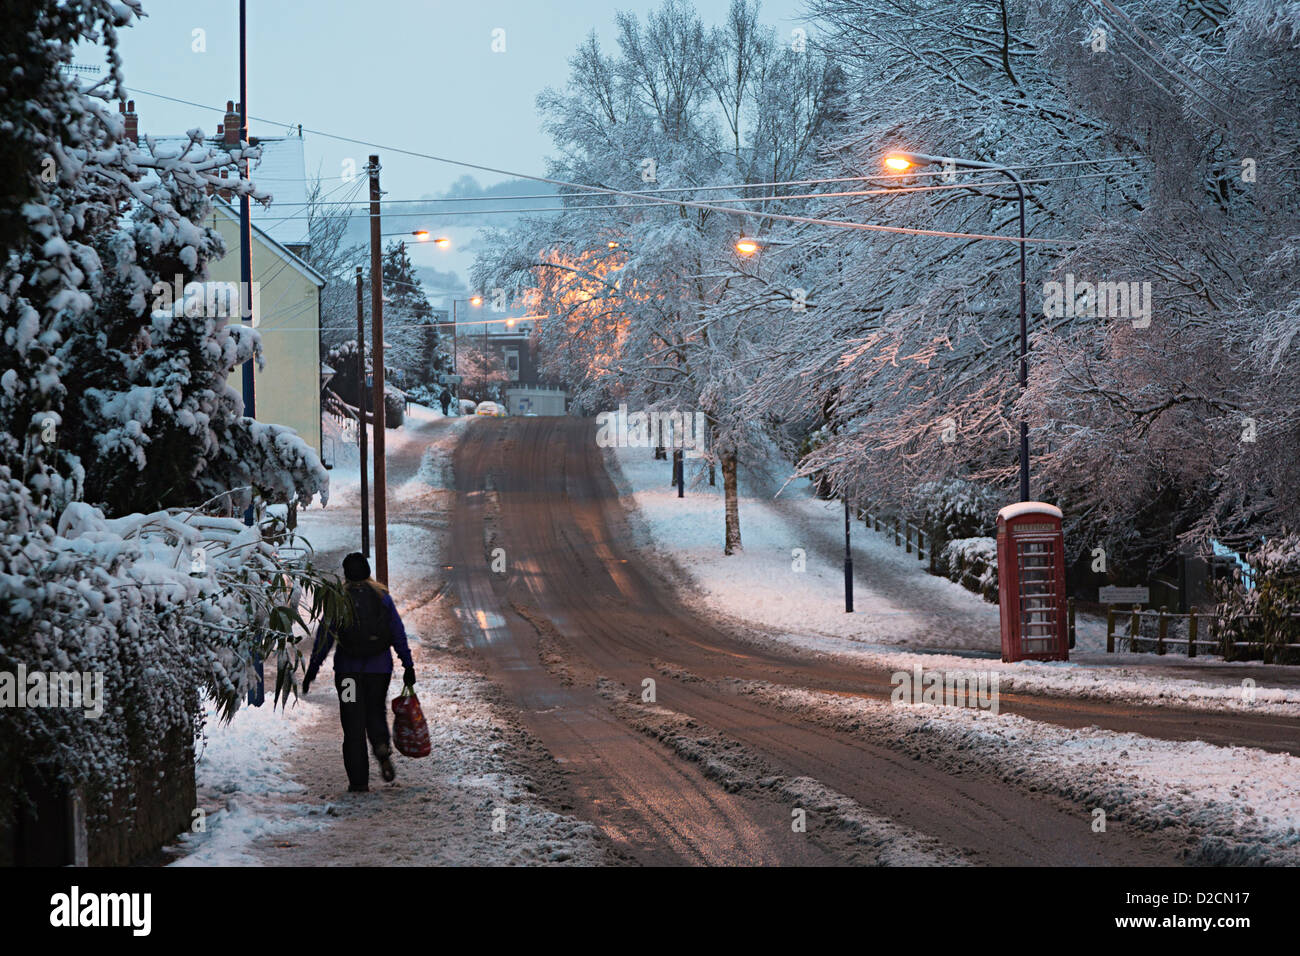 Woman walking with shopping bag on slippery pavement on winter street at dusk, Abergavenny, Wales, UK - Stock Image